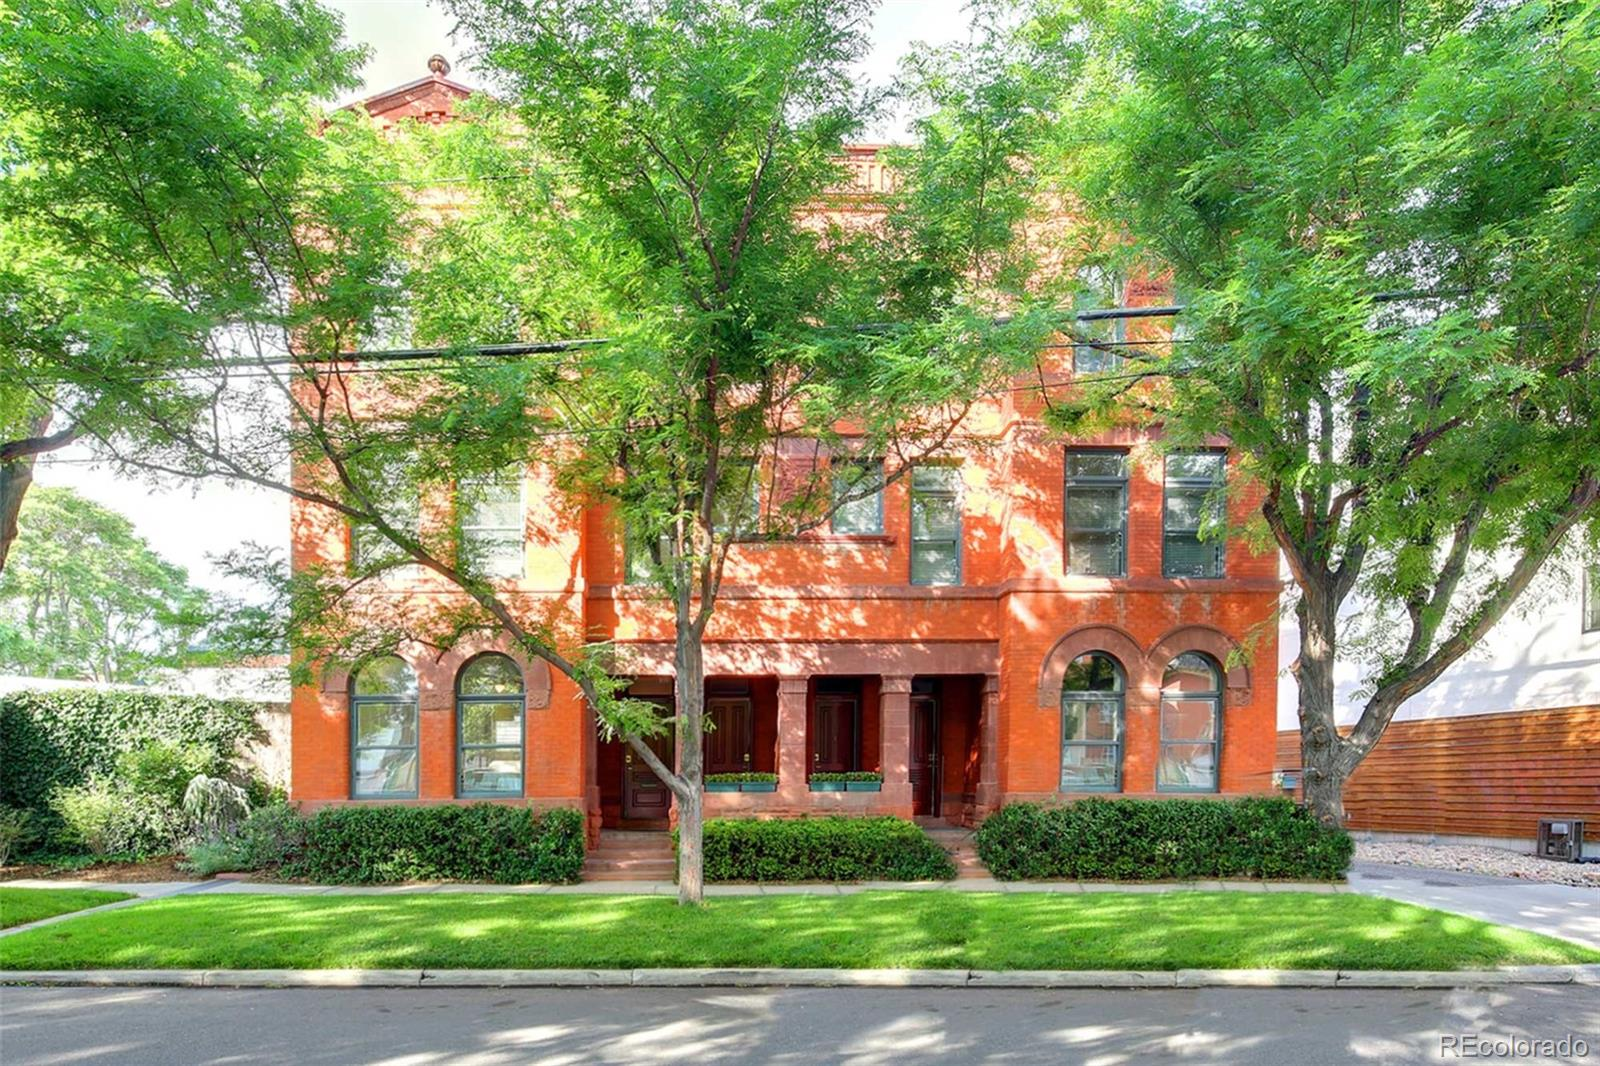 AUCTION: Bid October 22-28. Currently Listed for $4.85M. No Reserve. Showings Daily 1-4PM & by Appointment.  Own a piece of Denver architectural history at 816-818 25th Street. Renowned city architect Robert Roeschlaub built this Curtis Park estate. The stunning, detached garage is an AIA award-winning design and is a perfect backdrop to store your toys. This 130-year-old estate's flexible floorplan is completely restored and modernized, yet it offers plenty of opportunities to curate your vision. Currently offered as a duplex, the property was previously operating as a fourplex. Opportunities await at 816-818 25th Street as it could be transformed into a hospitality venture, or any other income-producing venues. Create a boutique workspace adjacent to your elegant residence, reconfigure all 10,000+sf into a luxurious home, or reconceive as a showpiece office destined to attract Denver's dynamic workforce. This is a true urban oasis, offering two tranquil courtyards imbued with a modern palette of stone, metal, concrete, and greenery. Soak up the clear mountain air in your private outdoor entertaining space or build a rooftop deck to enjoy mountain and city views.